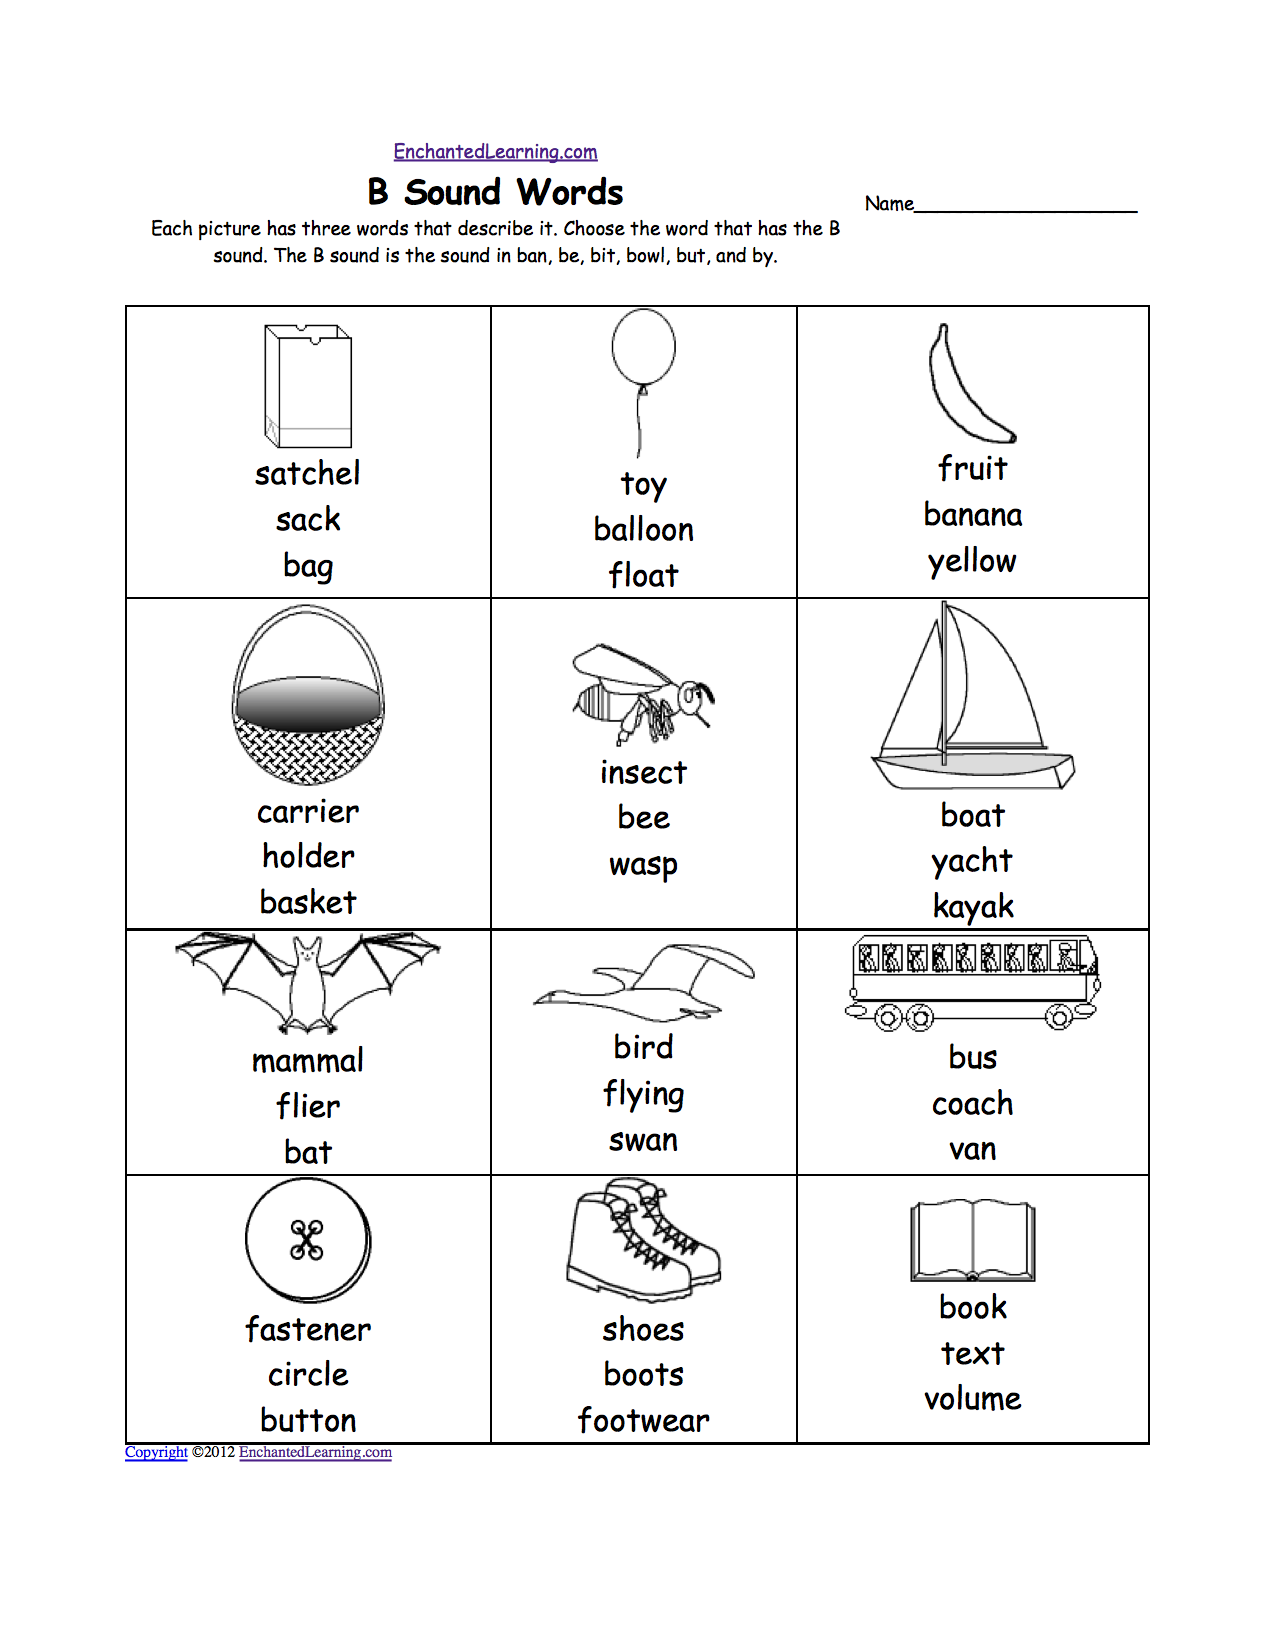 Aldiablosus  Pretty Phonics Worksheets Multiple Choice Worksheets To Print  With Luxury Quotbquot Sound Phonics Worksheet Multiple Choice Each Picture Has Three Words That Describe It Choose The Word That Has A Quotbquot Sound The Quotbquot Sound Is The Sound  With Cool Halloween Math Worksheets Grade  Also Understanding Integers Worksheet In Addition Dividing By  Worksheets And Psychsim Worksheets As Well As Math For Second Graders Worksheets Additionally Adjective And Adverb Phrases Worksheet From Enchantedlearningcom With Aldiablosus  Luxury Phonics Worksheets Multiple Choice Worksheets To Print  With Cool Quotbquot Sound Phonics Worksheet Multiple Choice Each Picture Has Three Words That Describe It Choose The Word That Has A Quotbquot Sound The Quotbquot Sound Is The Sound  And Pretty Halloween Math Worksheets Grade  Also Understanding Integers Worksheet In Addition Dividing By  Worksheets From Enchantedlearningcom